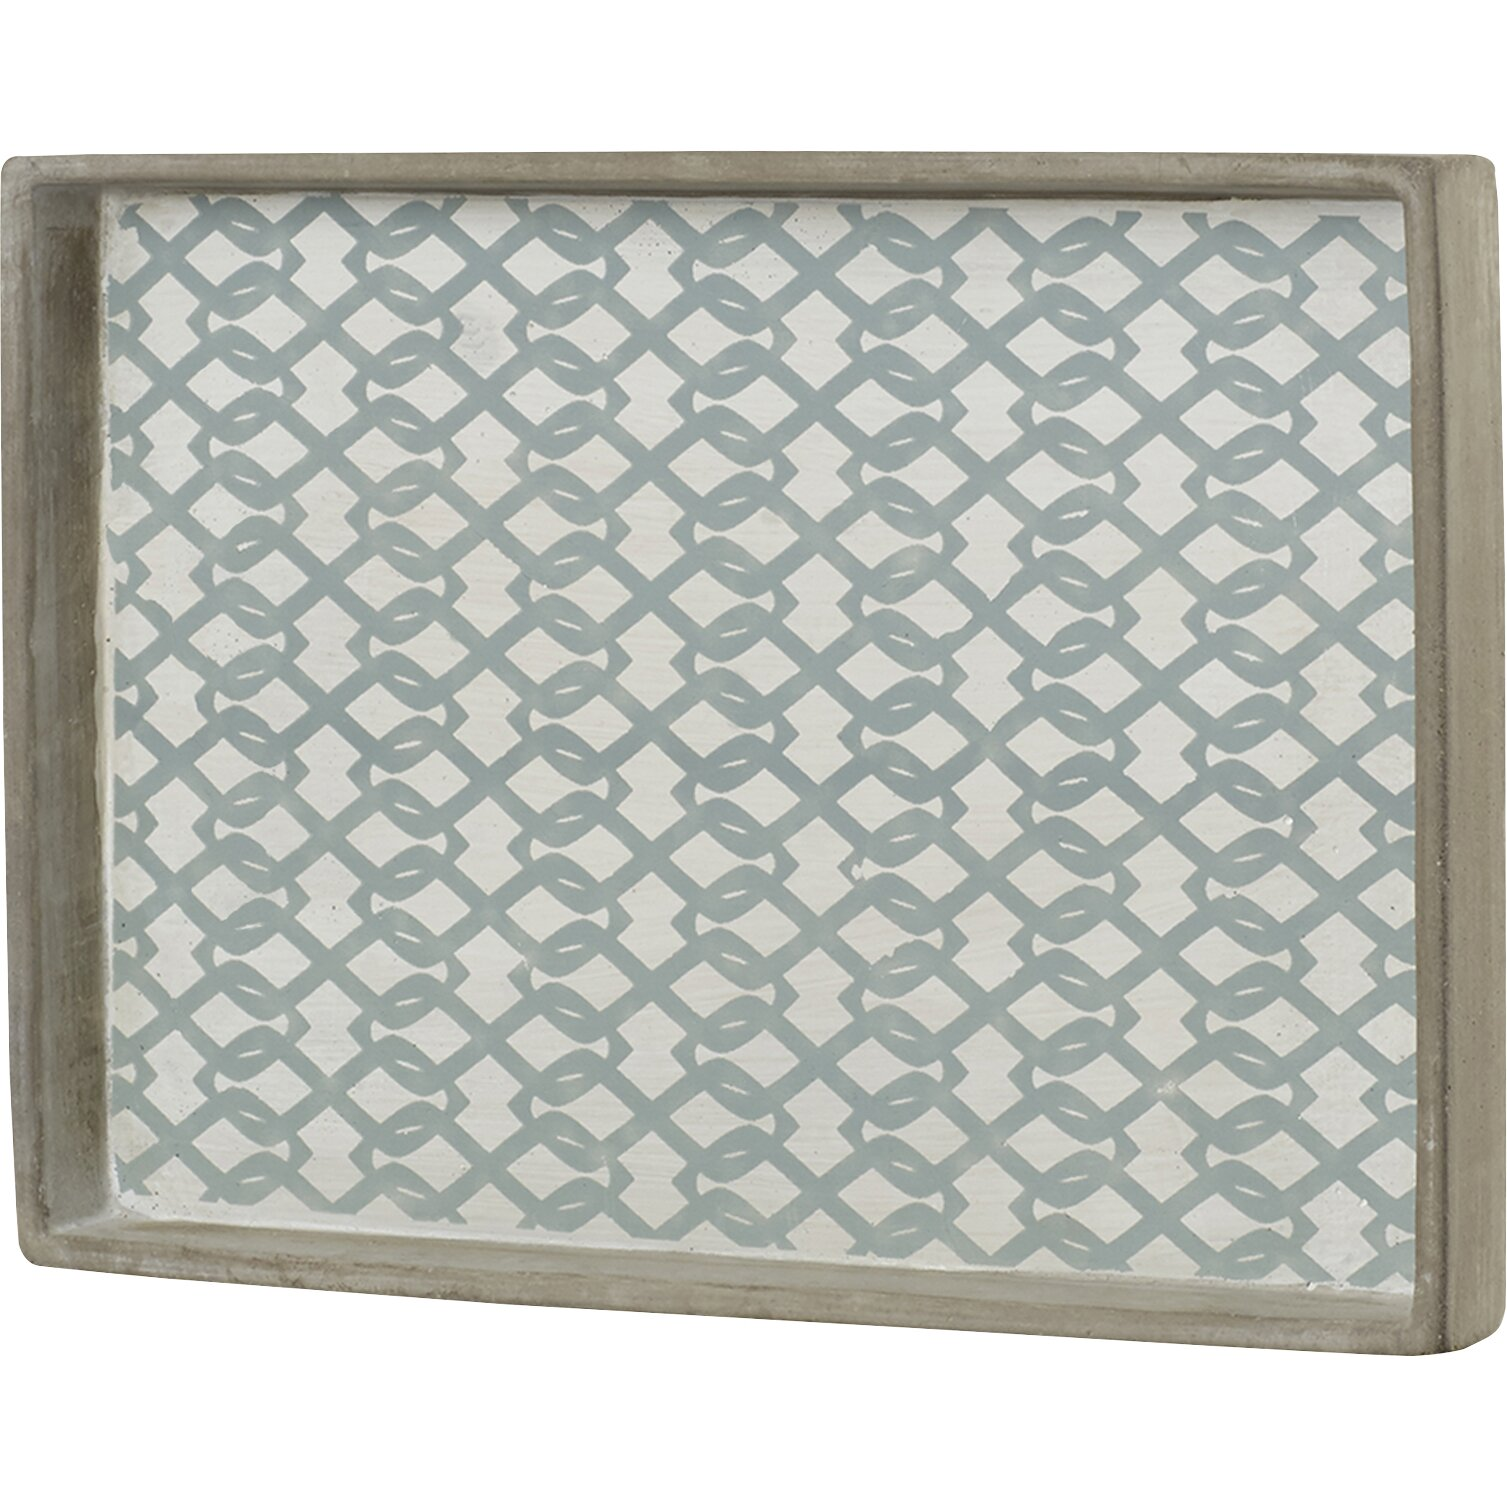 julia decorative tray - Decorative Tray